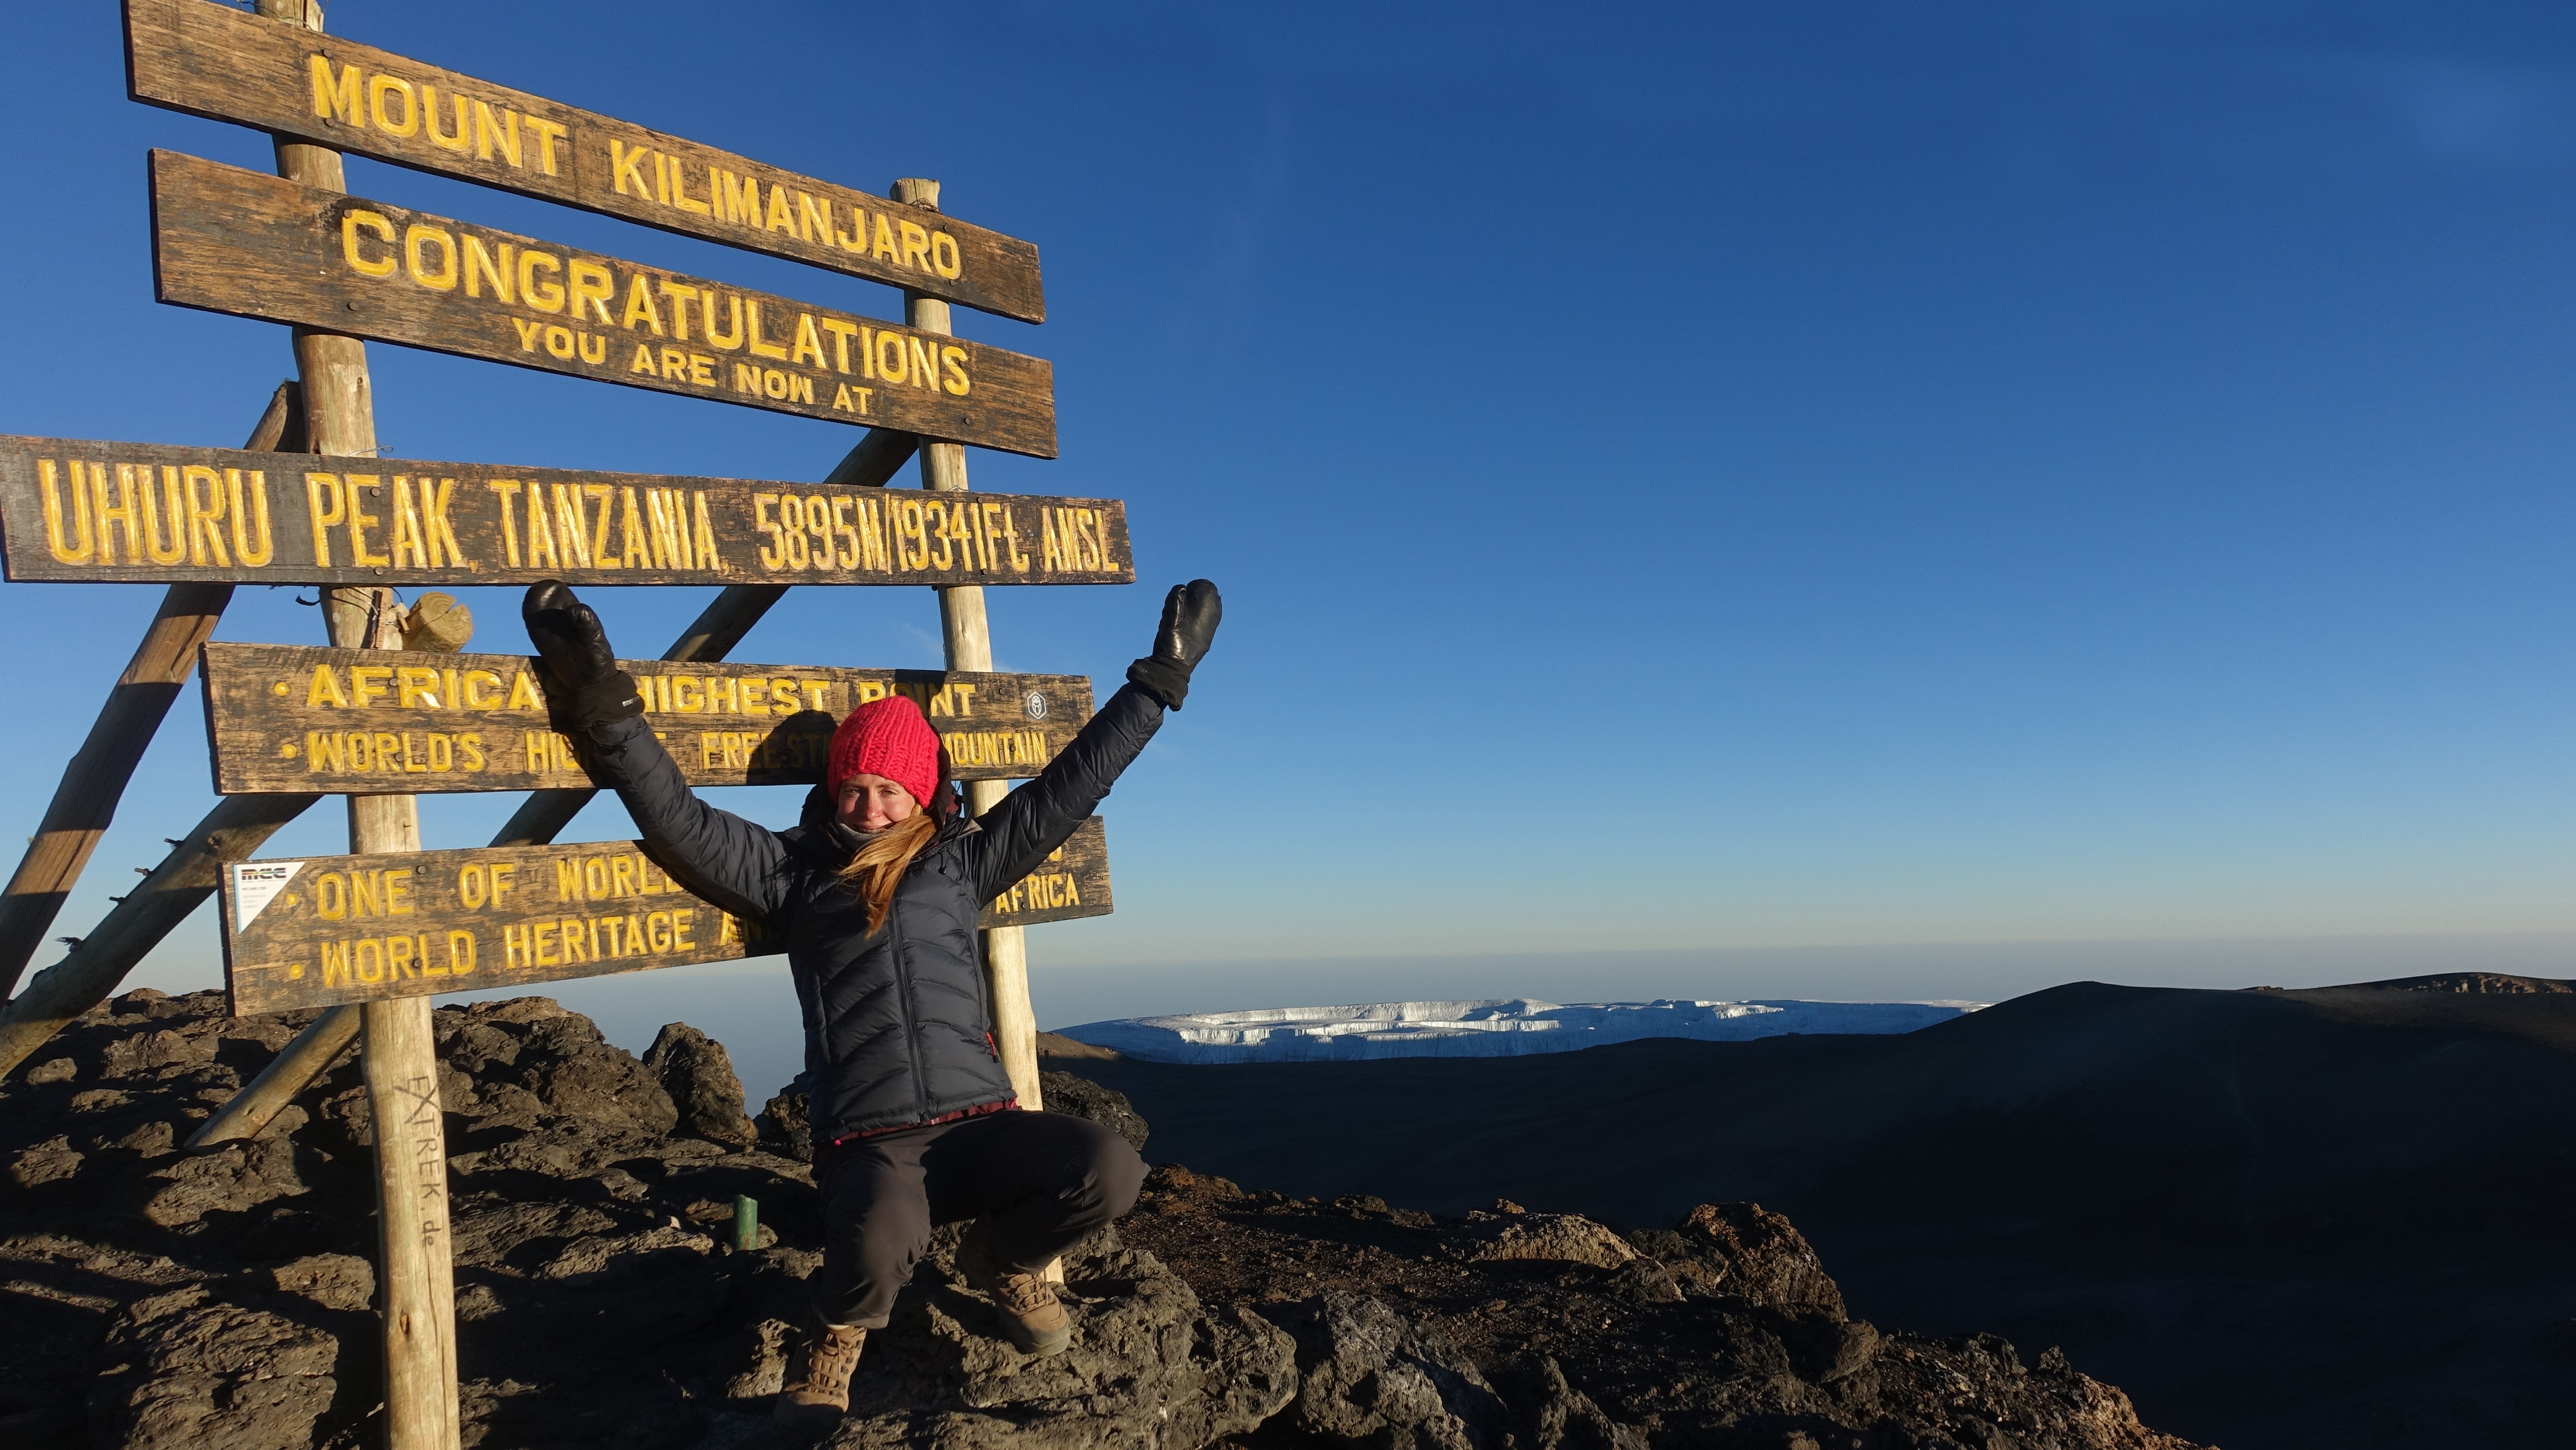 The Ultimate Guide | Climbing Mount Kilimanjaro